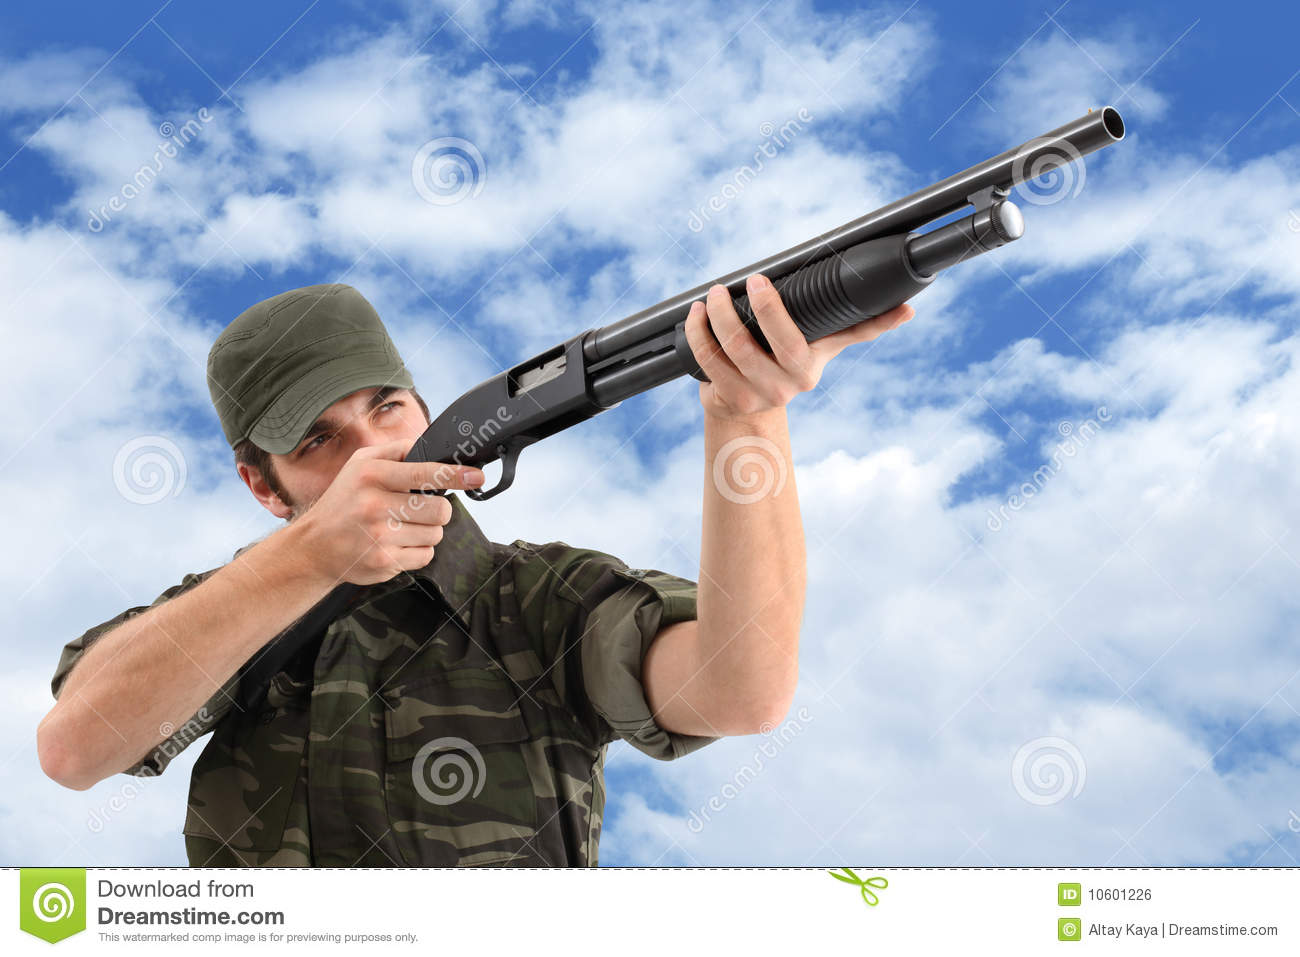 Aiming And Shooting With Rifle Stock Photo - Image: 10601226